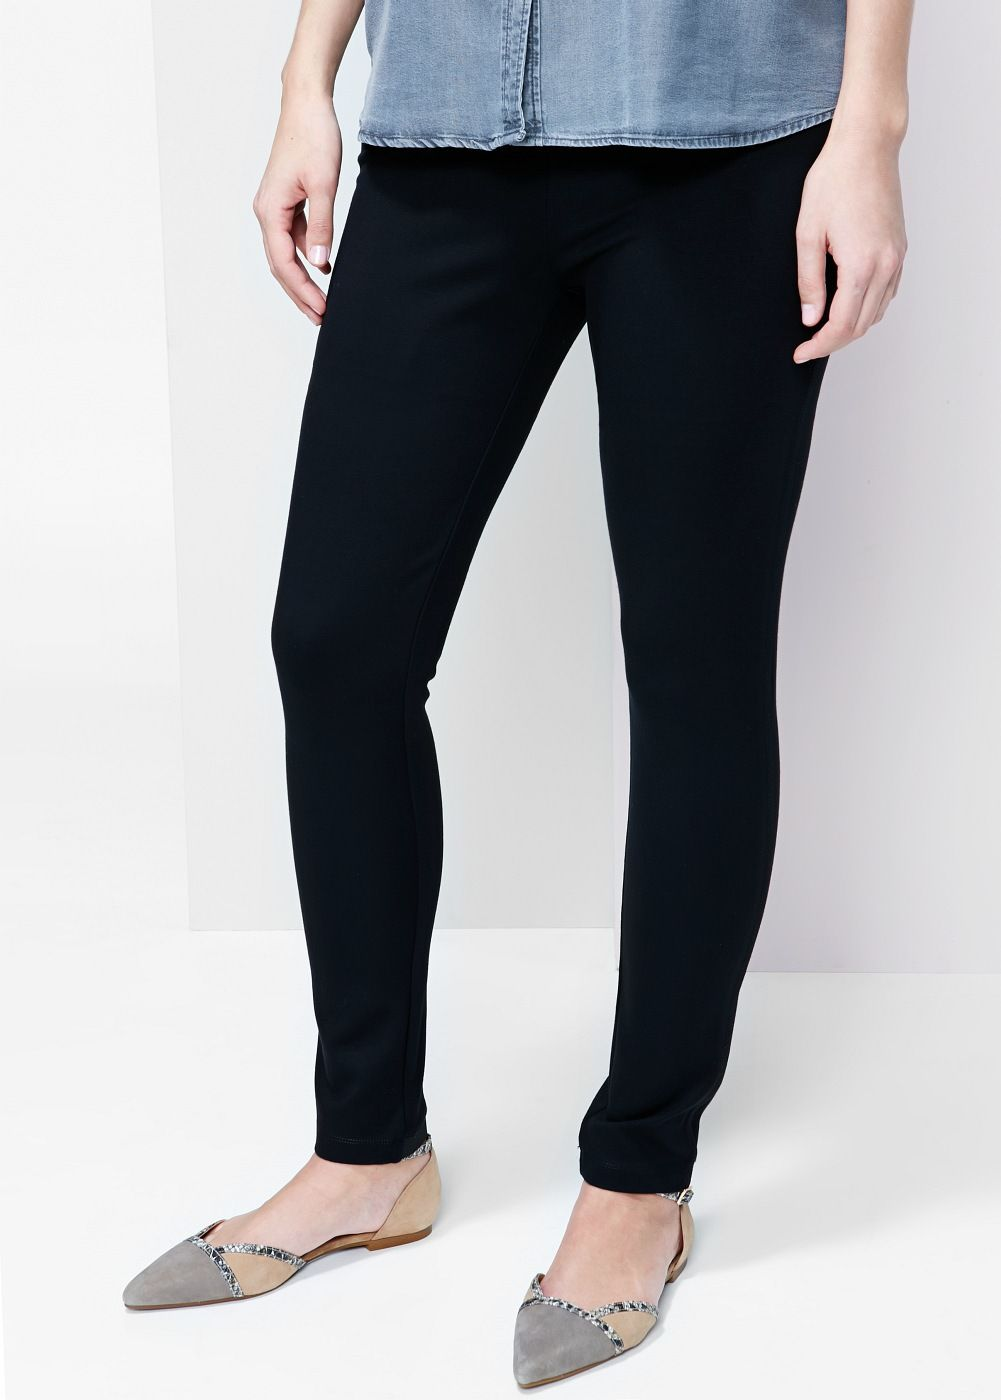 Punto-di-roma legging - Grote maten | Ponte leggings and Spring